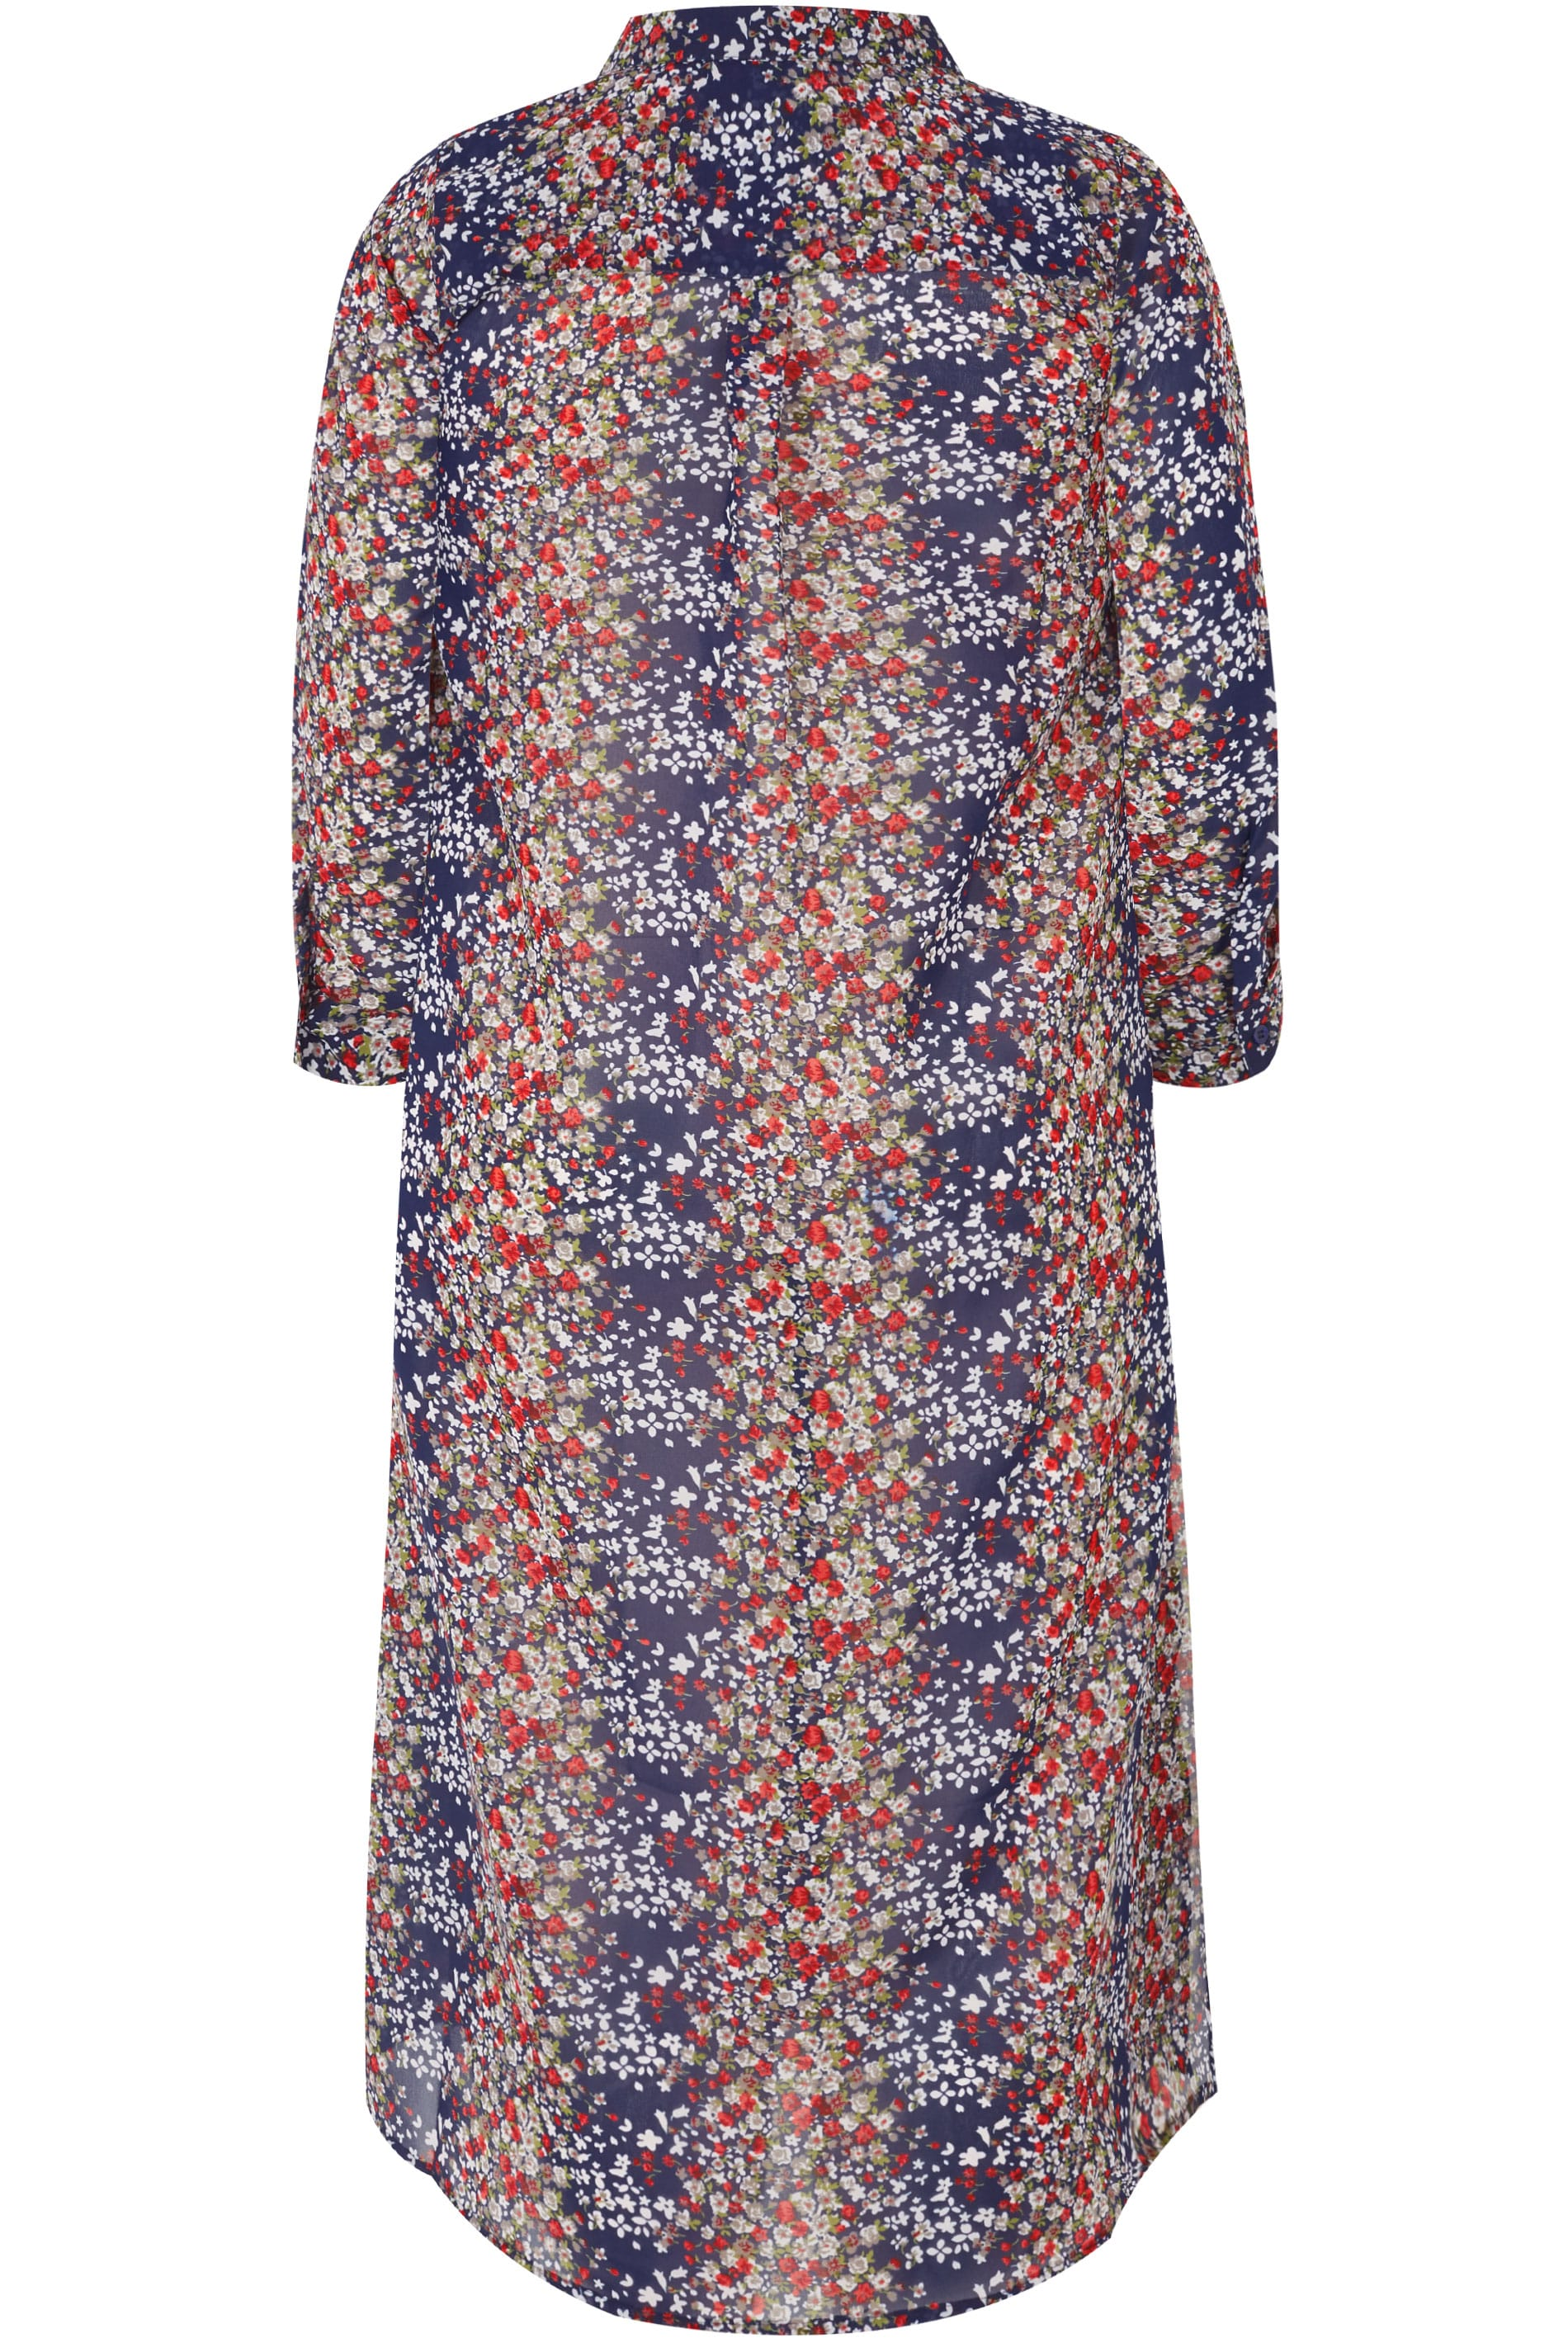 Navy & Multi Floral Print Maxi Shirt, plus size 16 to 36